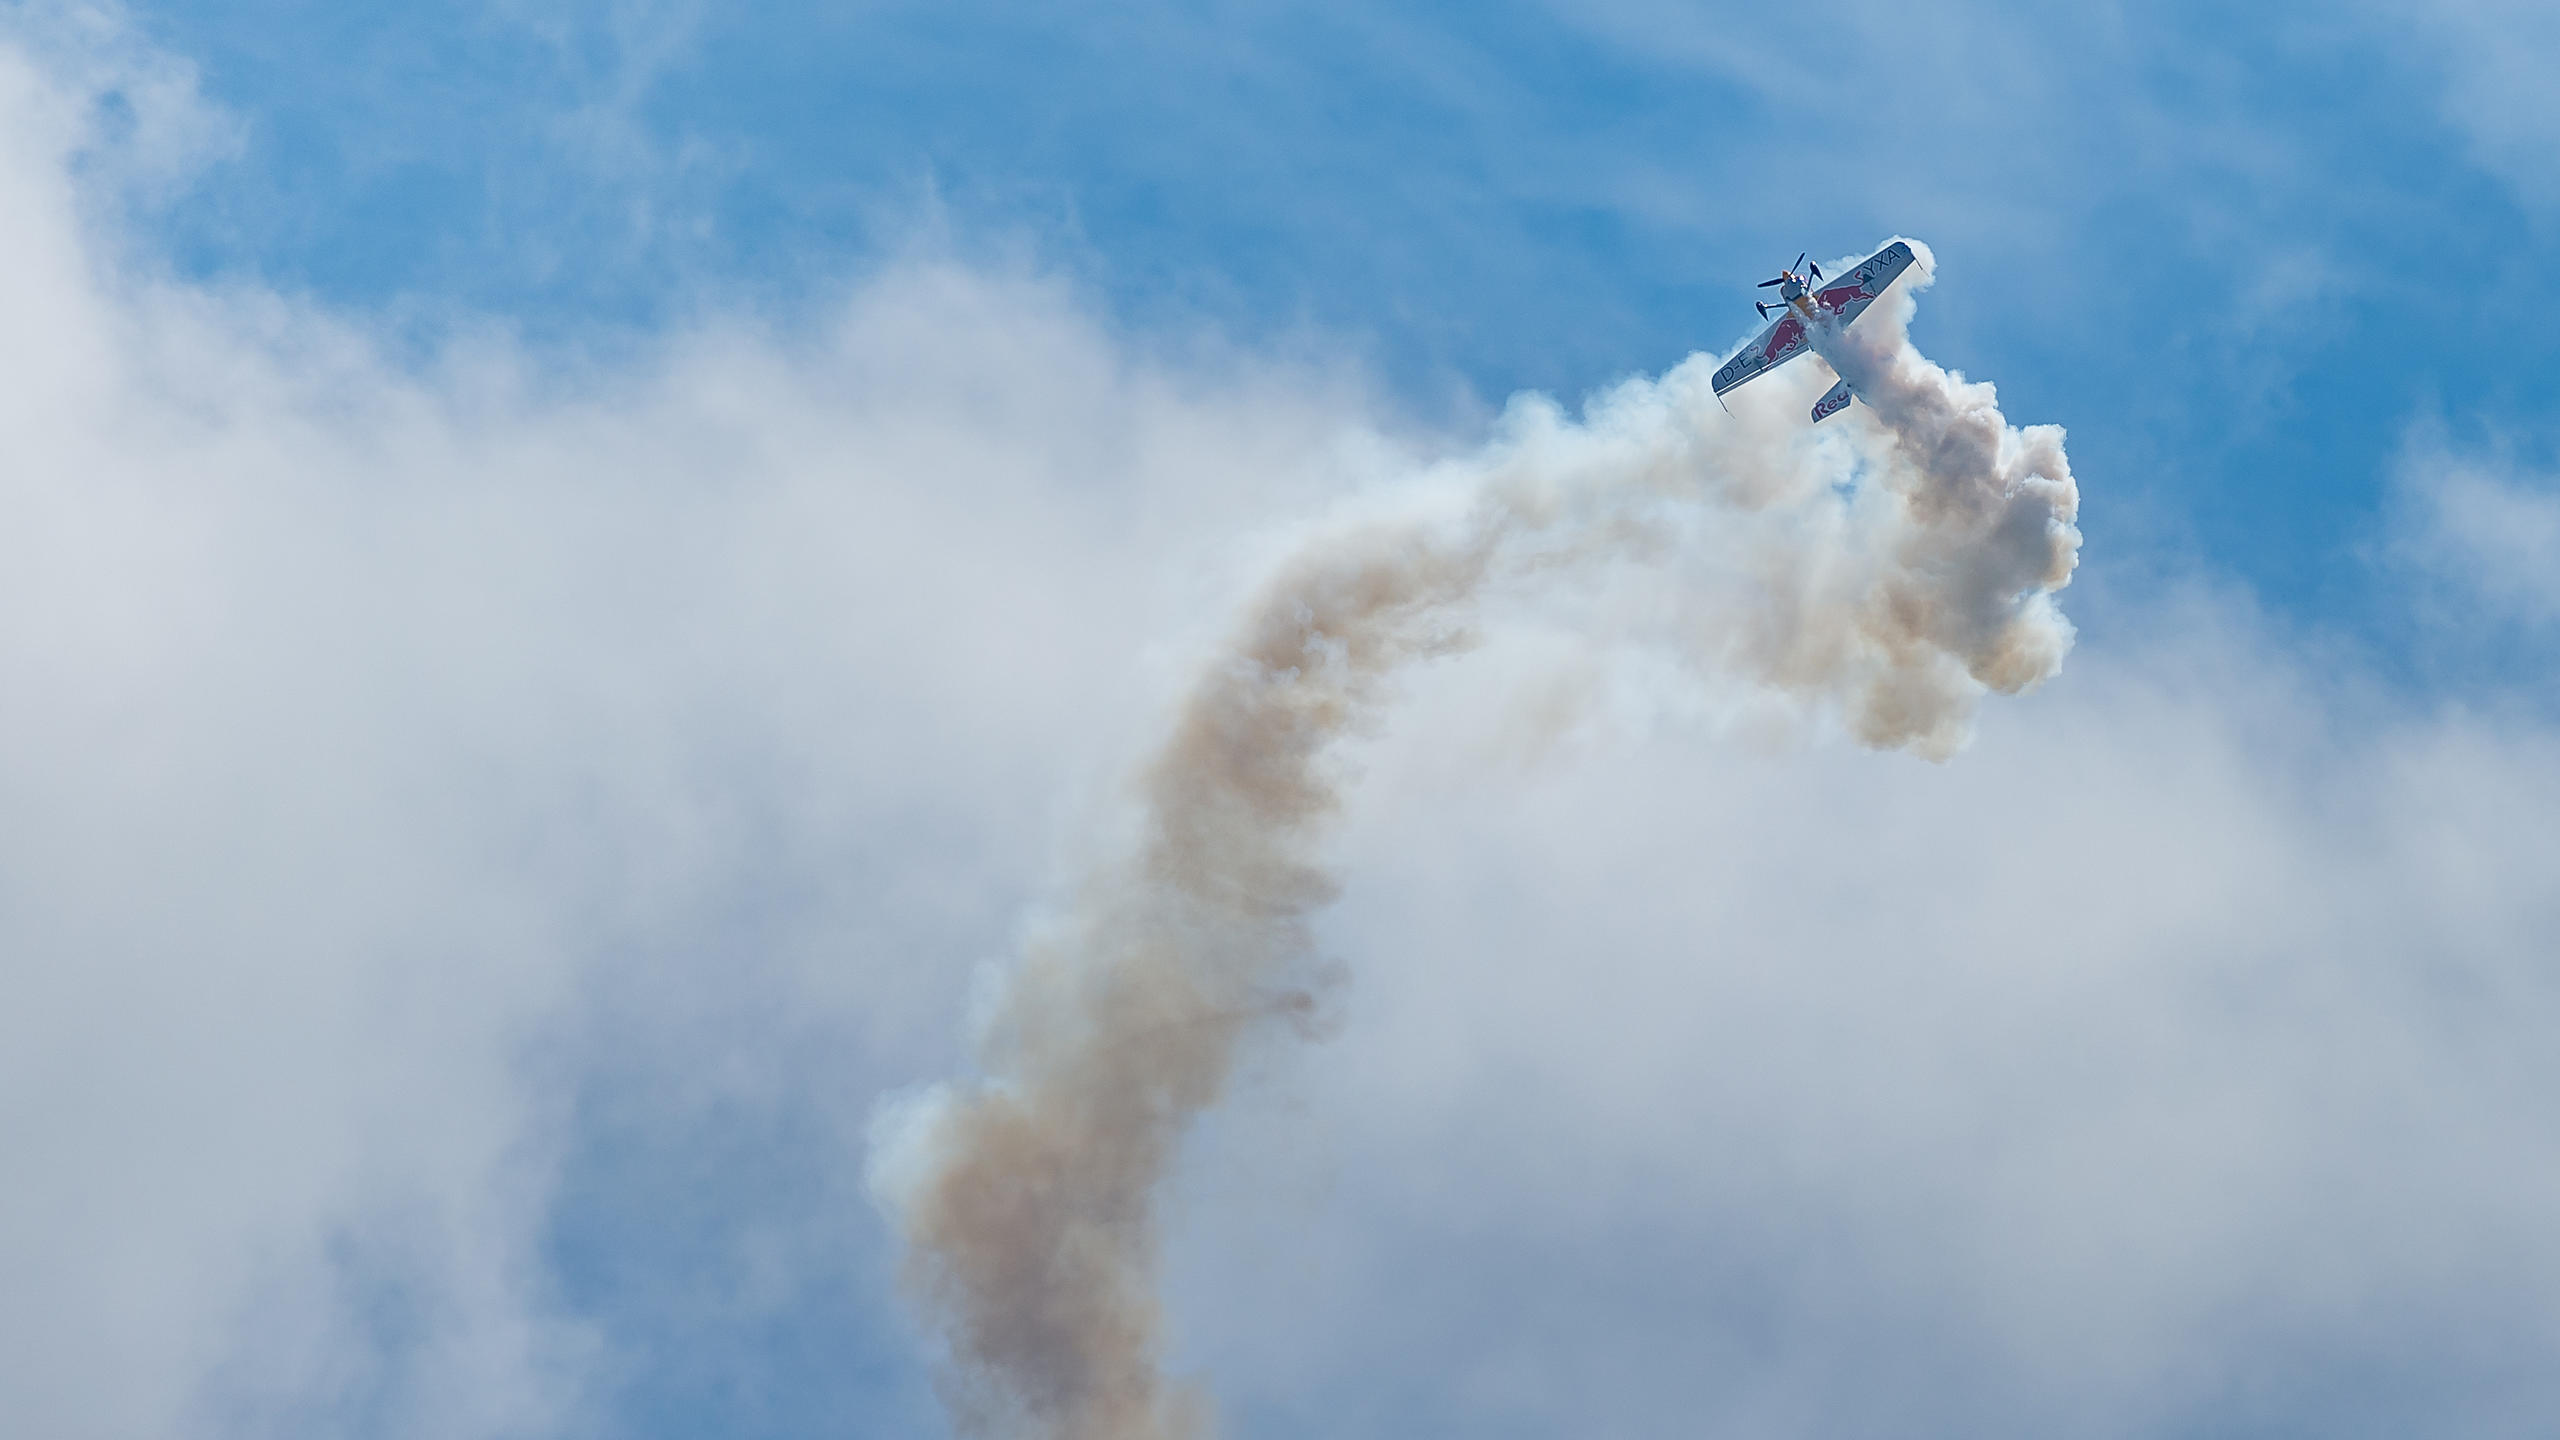 Redbull Stunt Plane in Engine Freefall